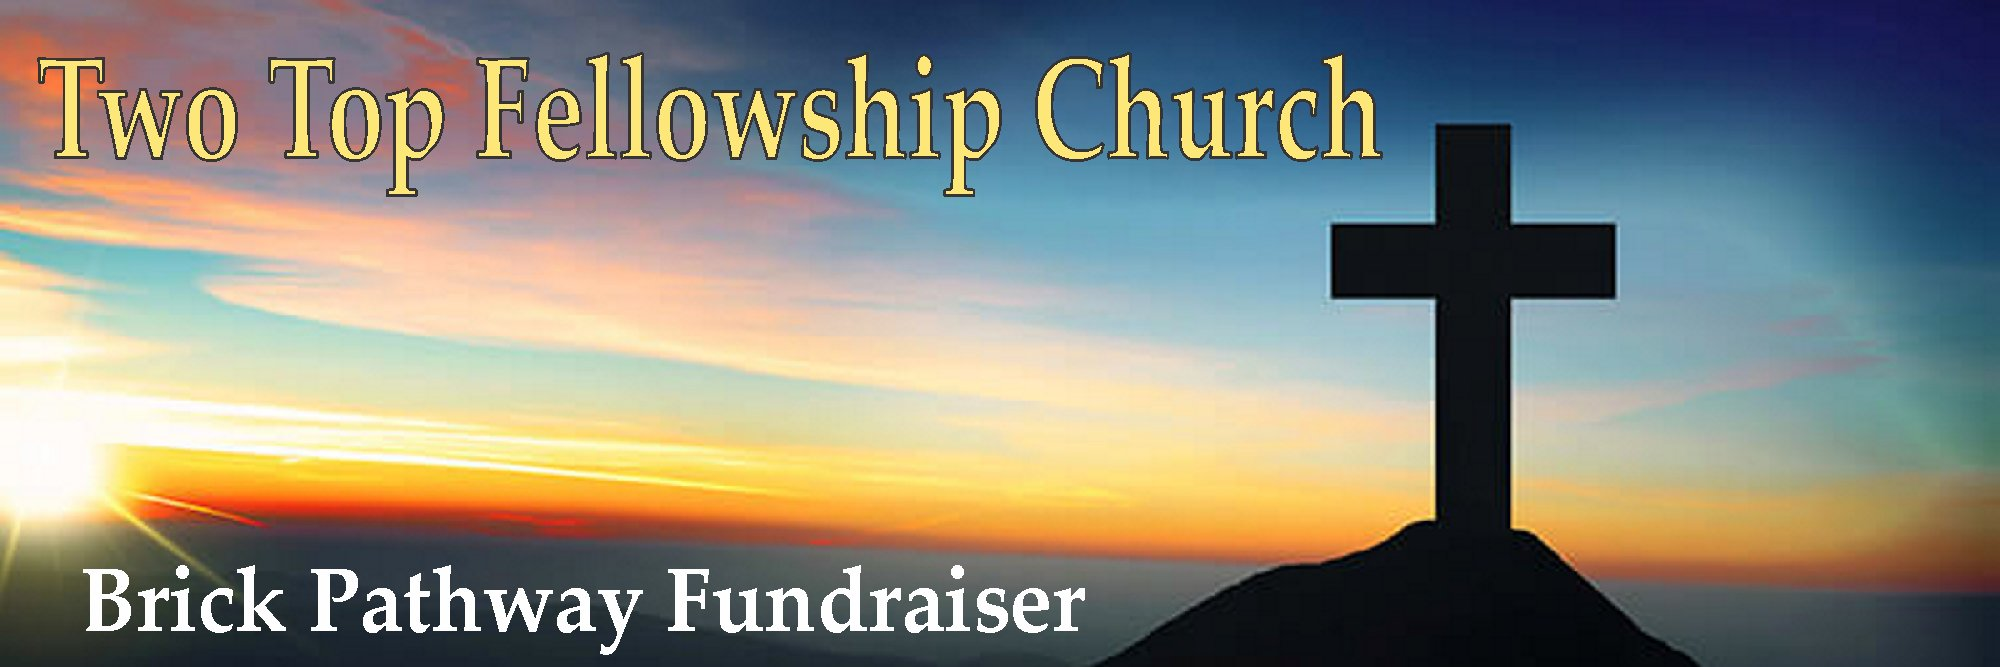 Two Top Fellowship Church Brick Pathway Fundraiser